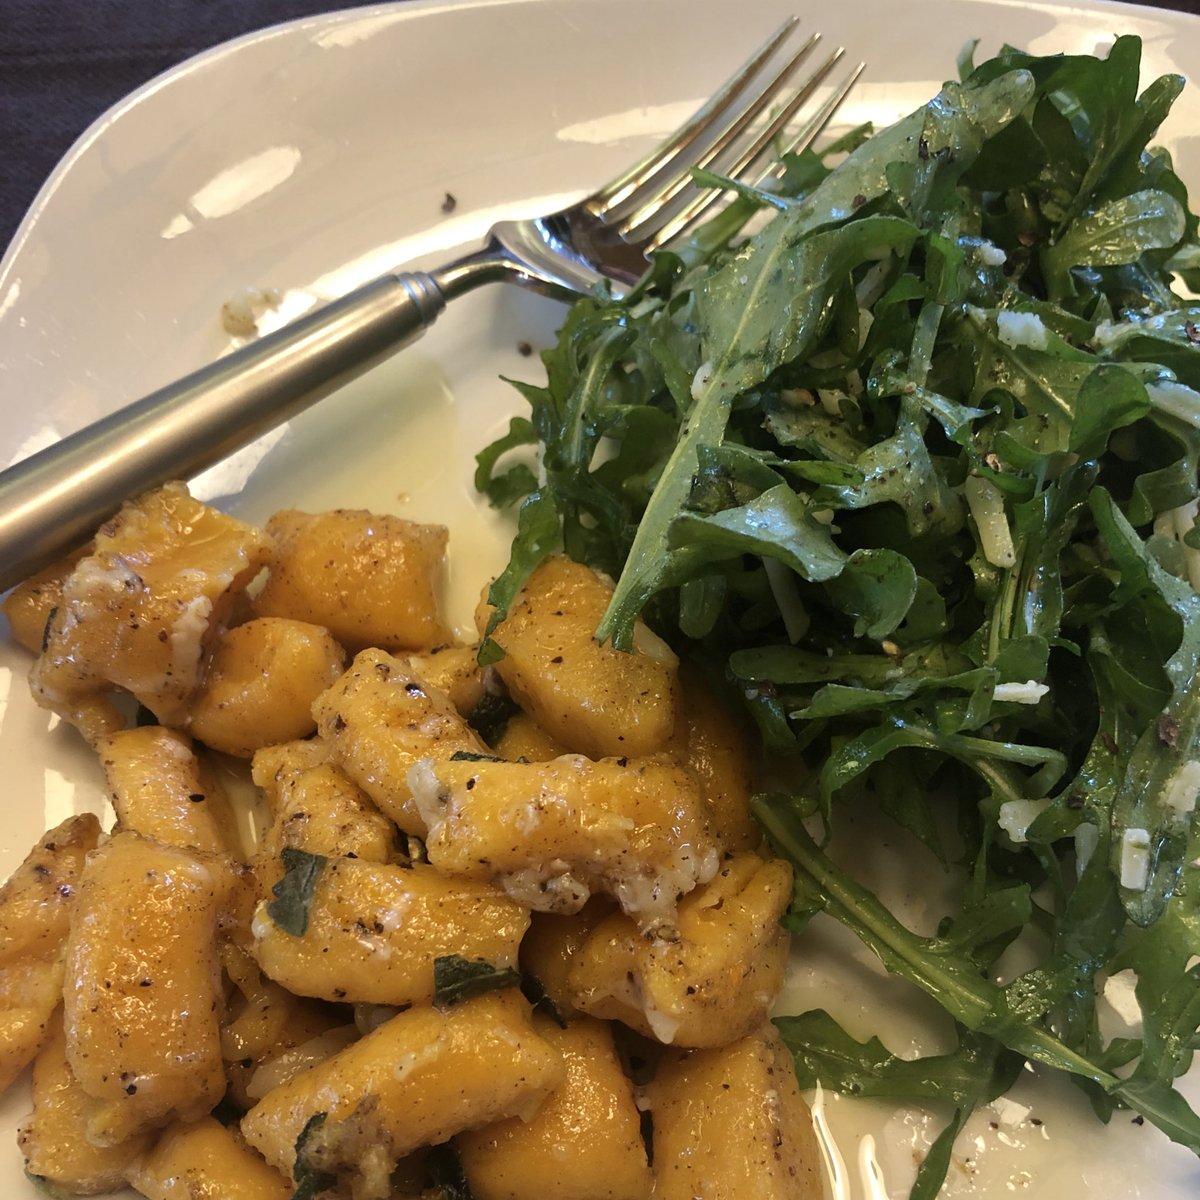 Carmen Miller On Twitter Covid Cooking With A Little Help From Chrissyteigen Sweet Potato Gnocchi W Brown Butter And Sage Red Chicken Curry And Pad Thai Carbonara Ftw Socialdistancedinner Covidcooking Https T Co Wzehv0cdzb